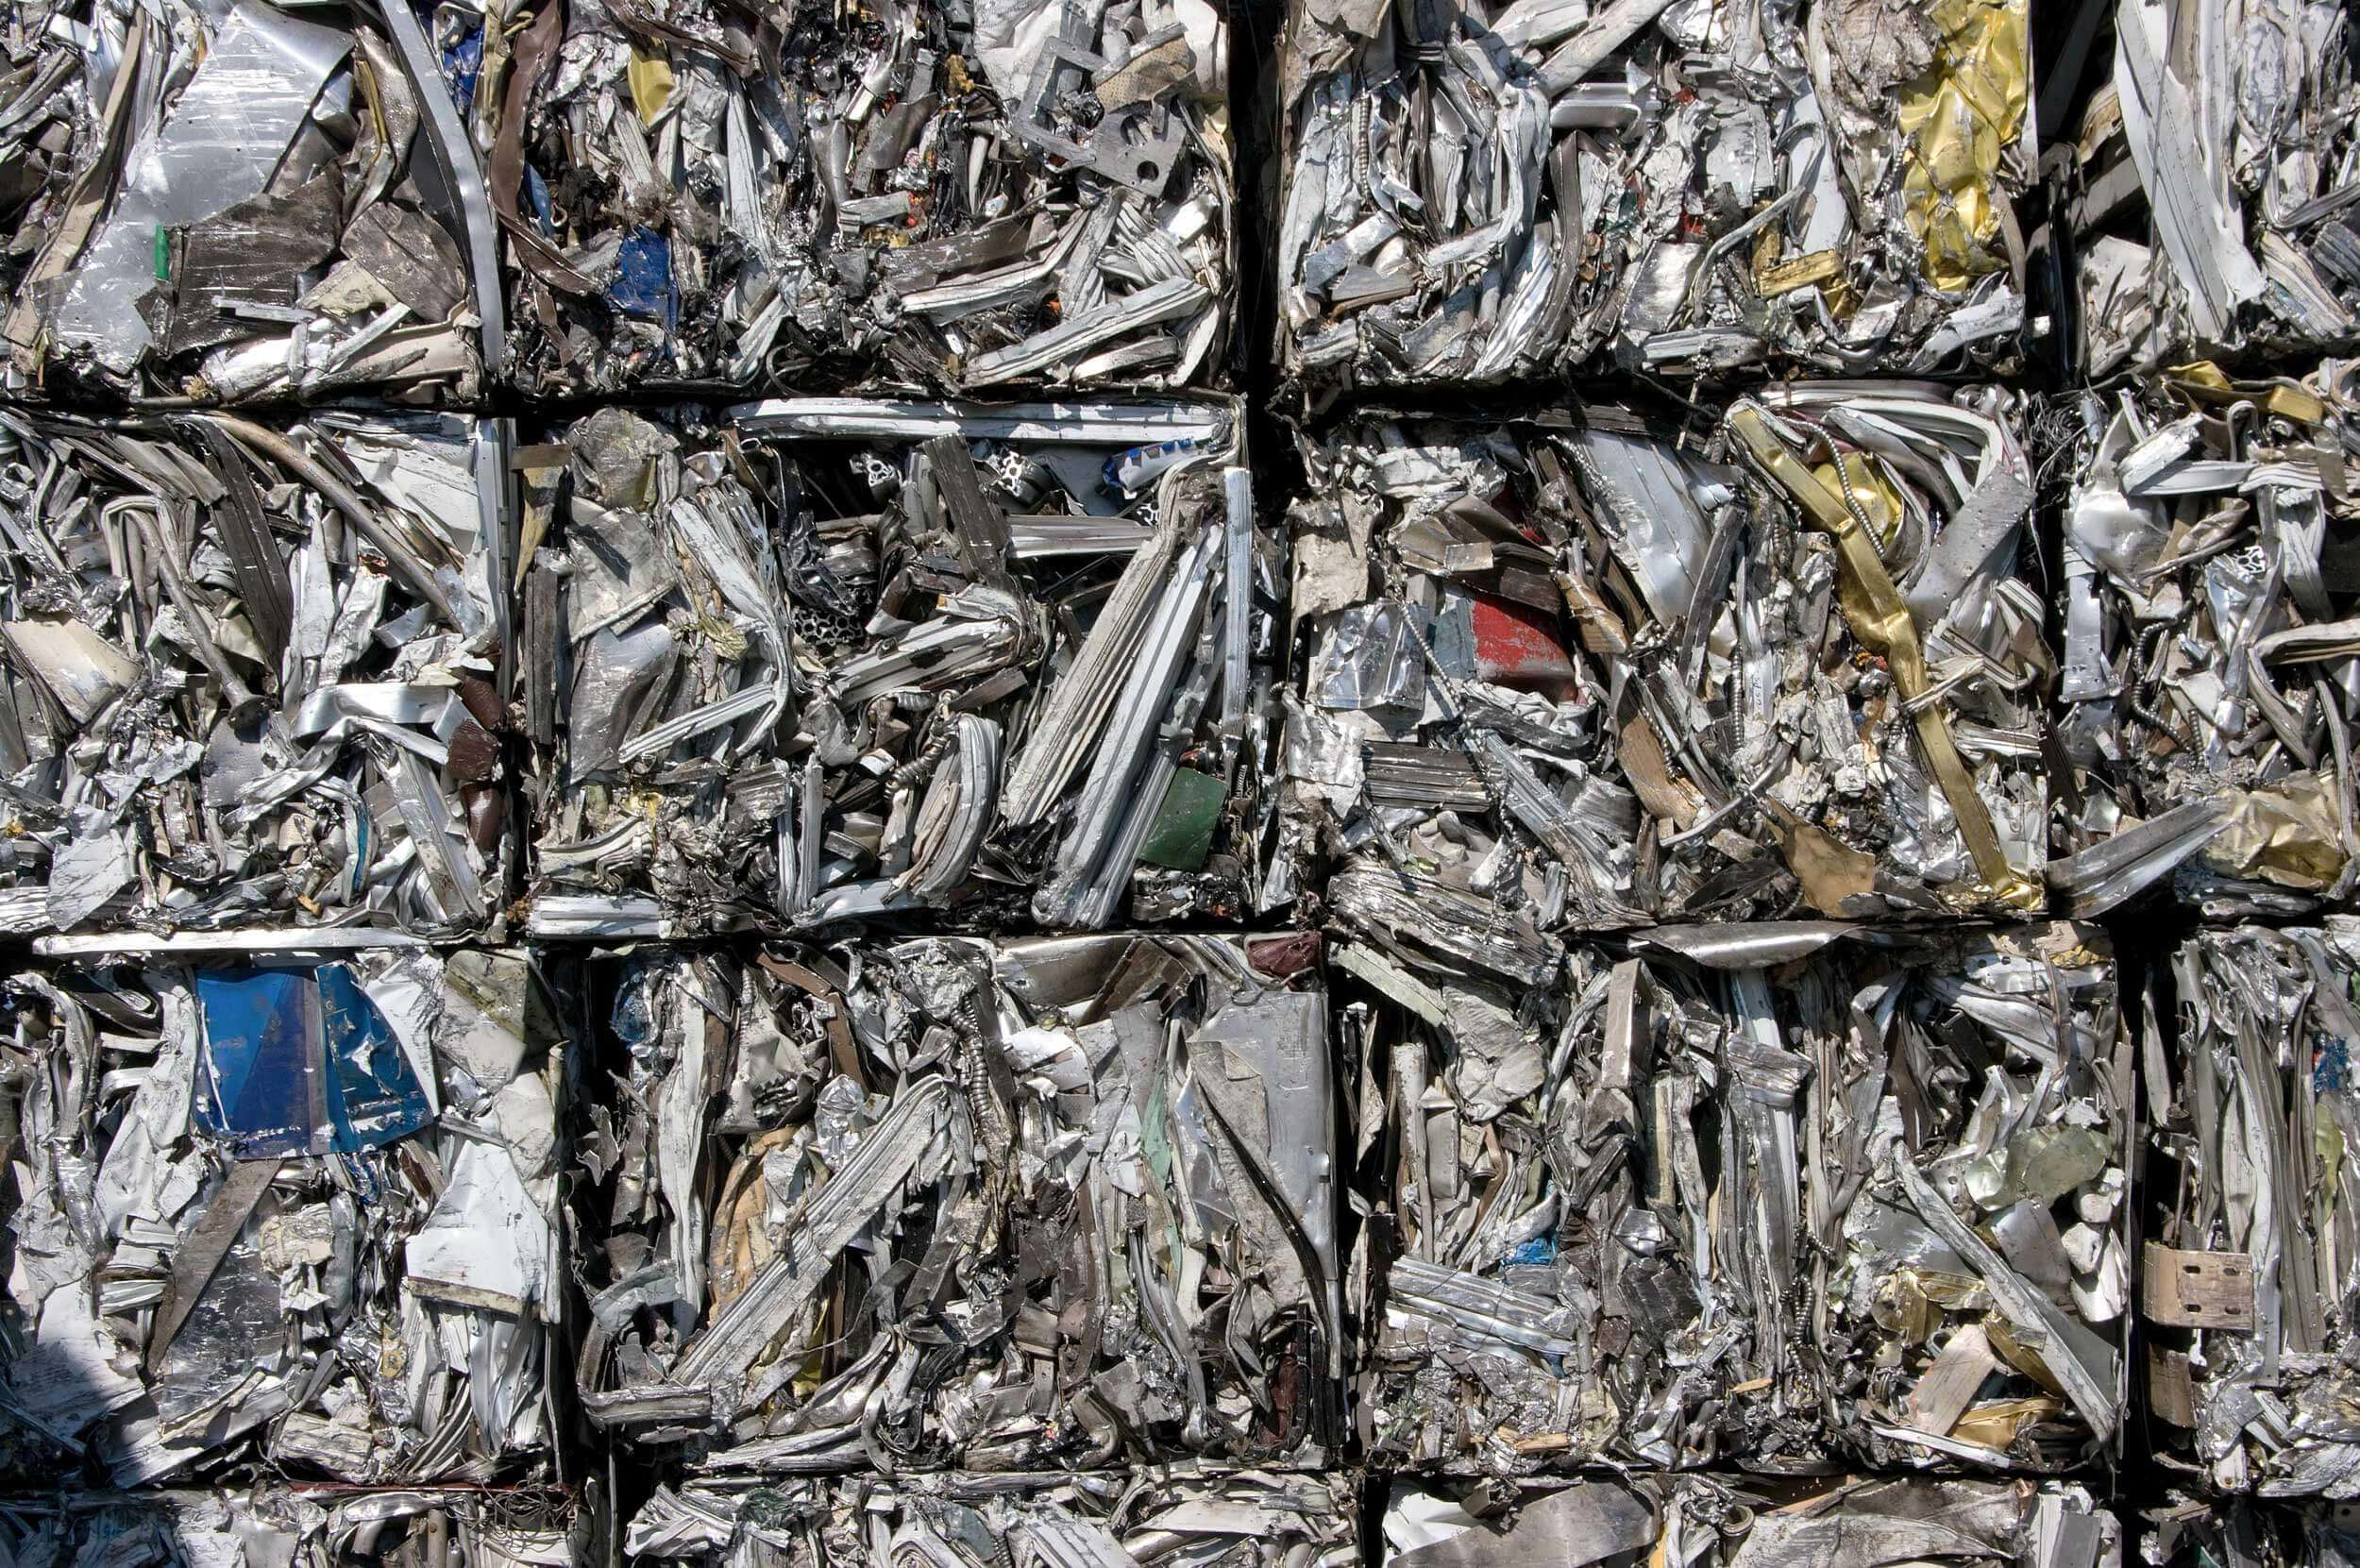 Scrap pressed into bales can be recycled by shredding